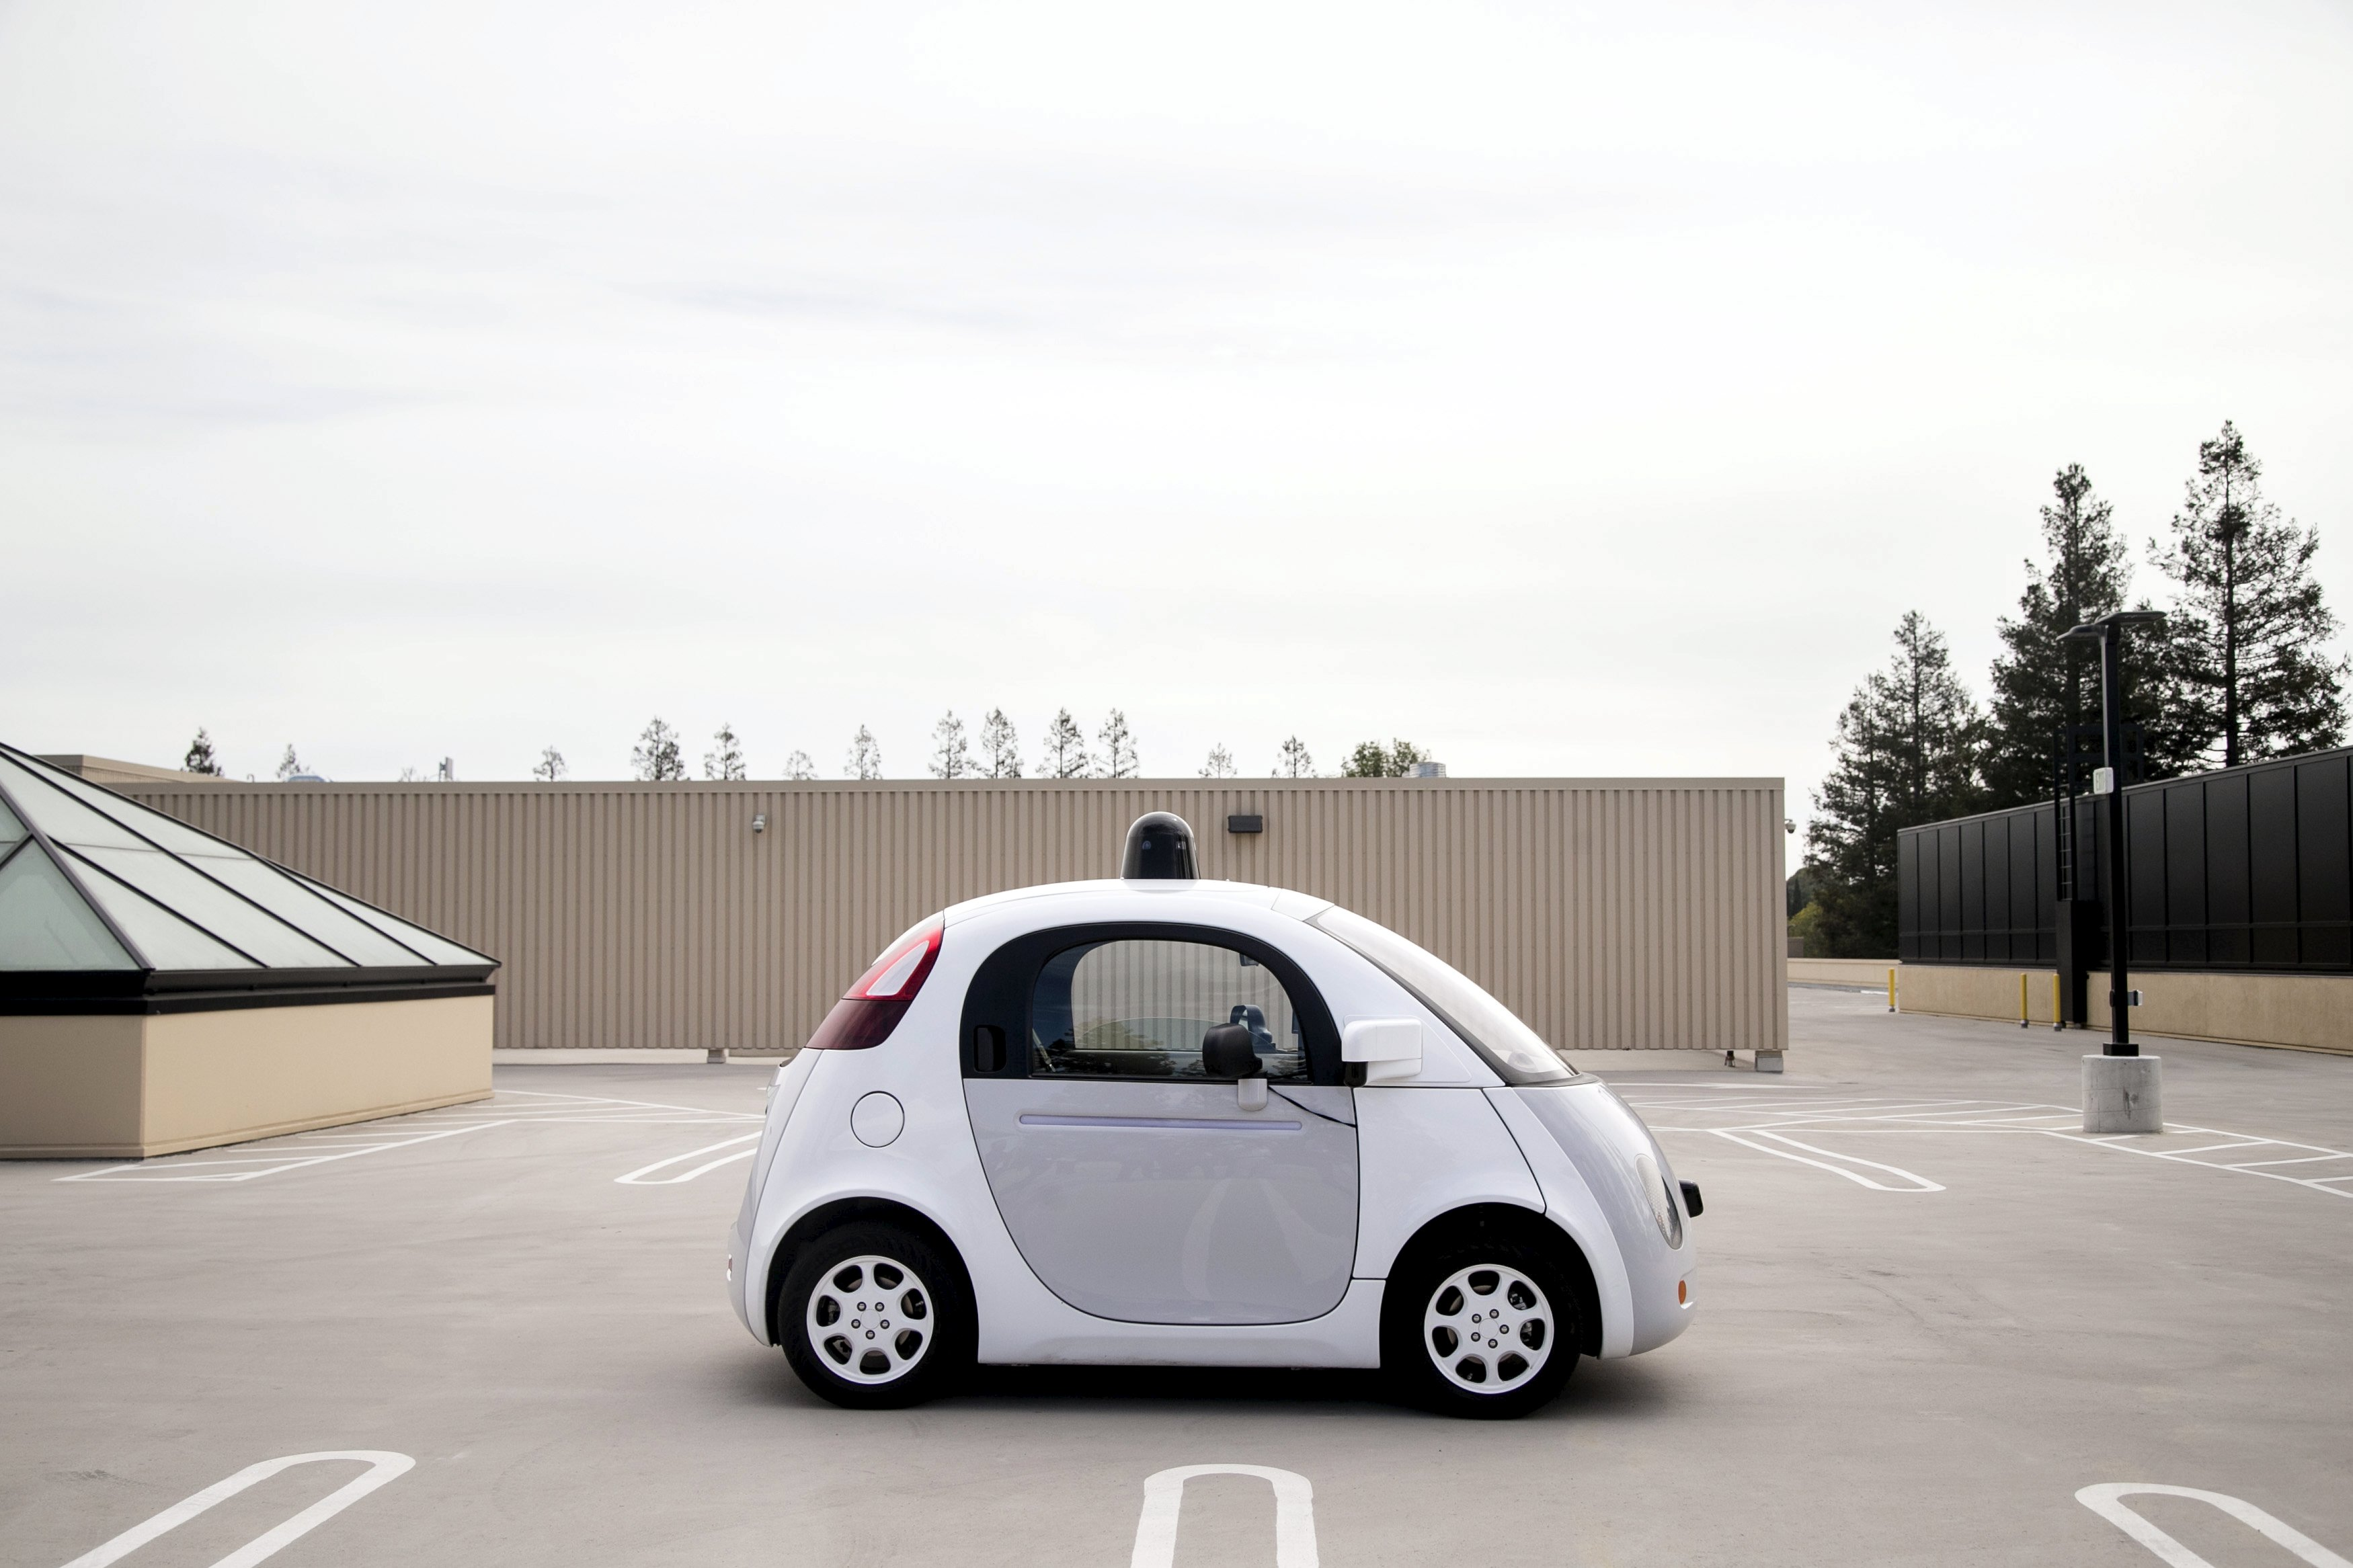 A prototype of Google's own self-driving vehicle is seen during a media preview of Google's current autonomous vehicles in Mountain View, California September 29, 2015.  Photo: Reuters